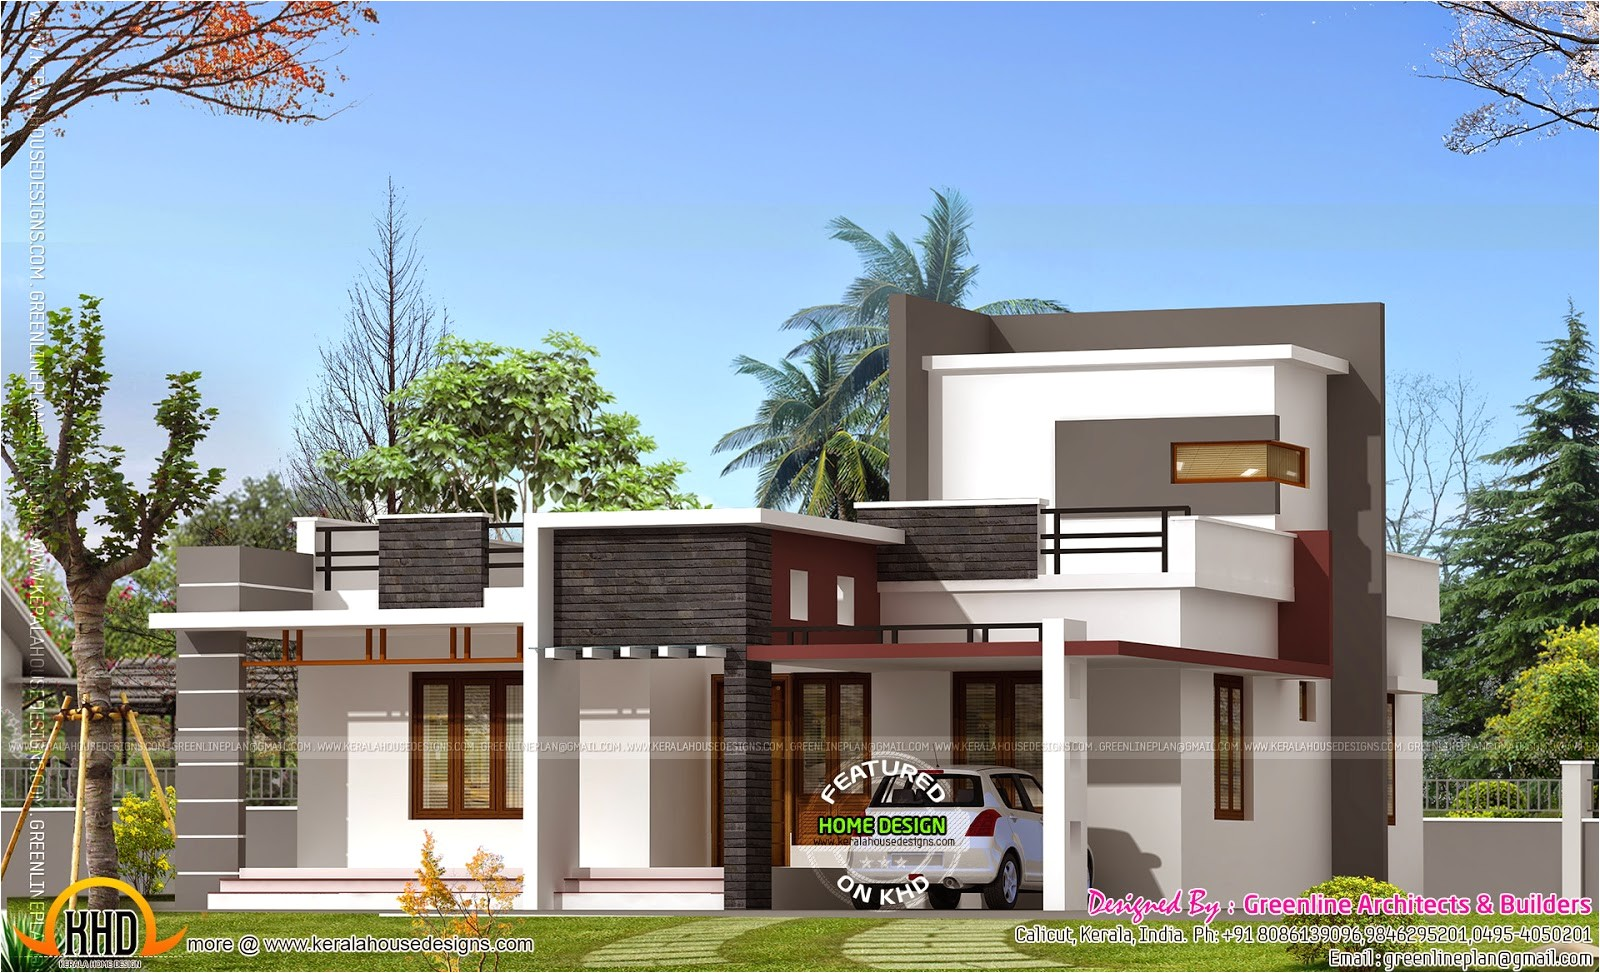 1000 Sq Ft House Plans 3 Bedroom Indian Style 1000 Square Feet House Kerala Home Design and Floor Plans